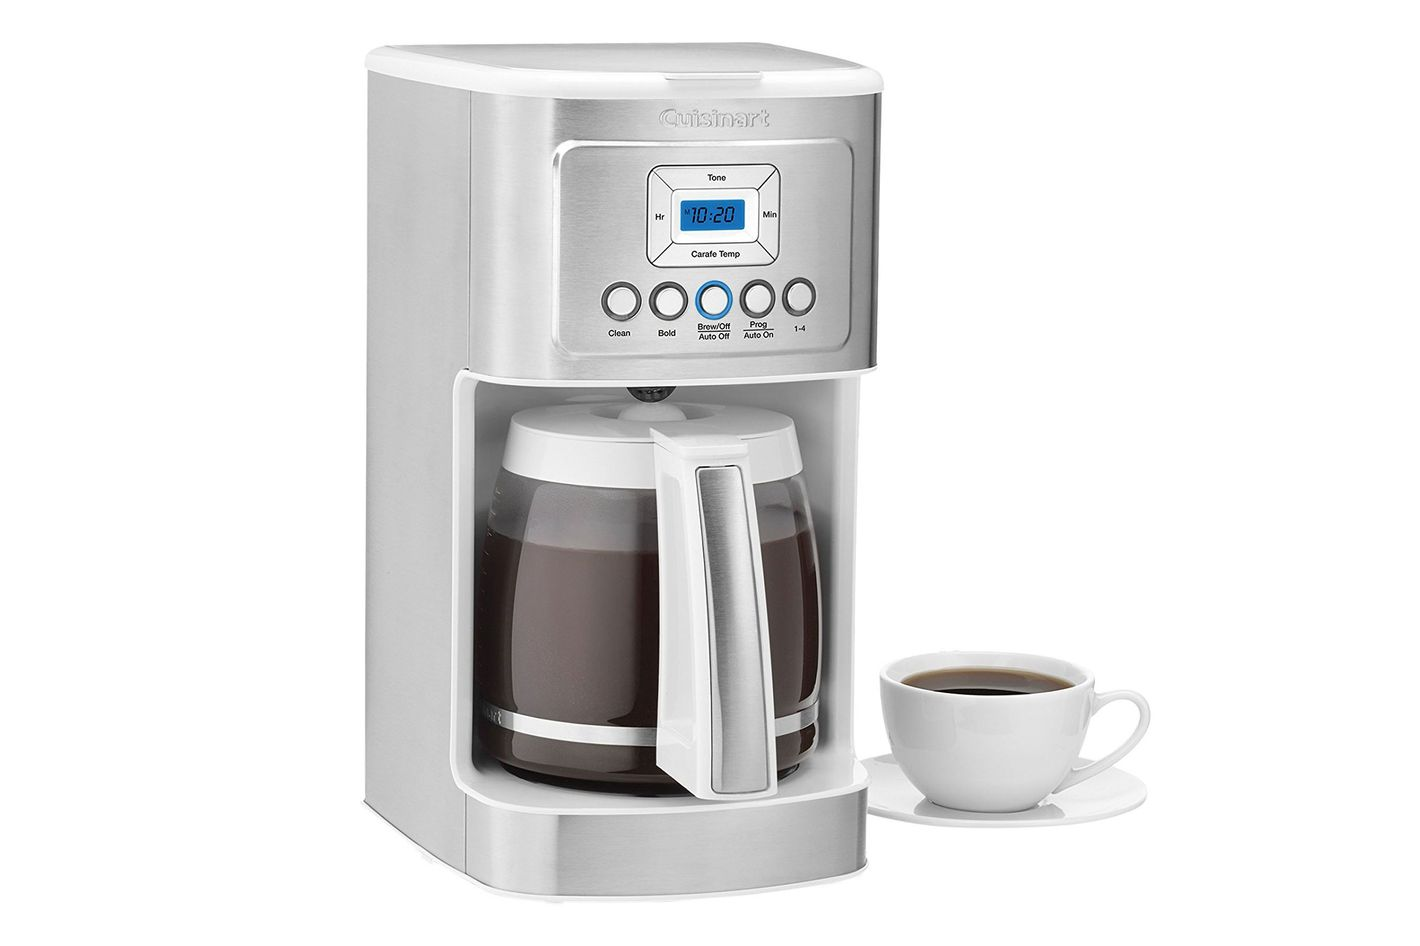 Home Leader Coffee Maker : 11 Best Coffee Makers for Brewing at Home